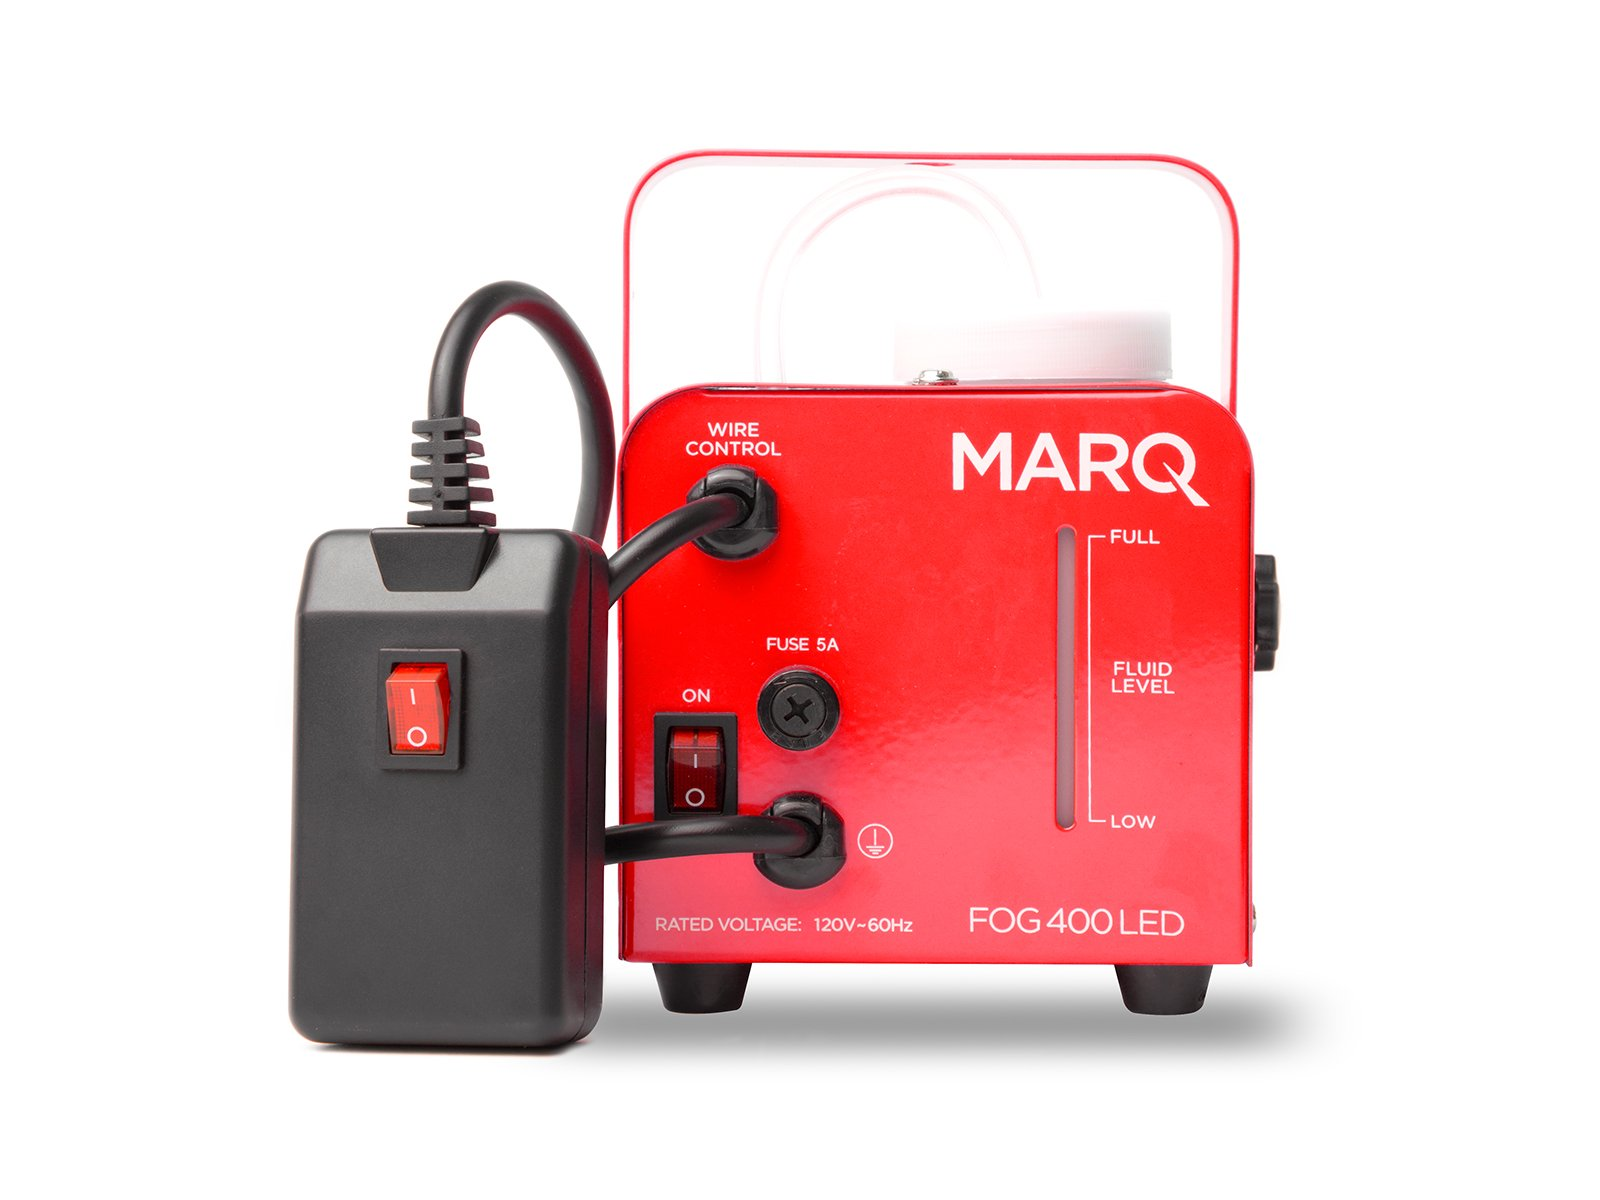 MARQ Fog 400 LED | 400W Water-Based Special Effects Fog Machine with Red-Color LED Lights (Red) by MARQ (Image #3)